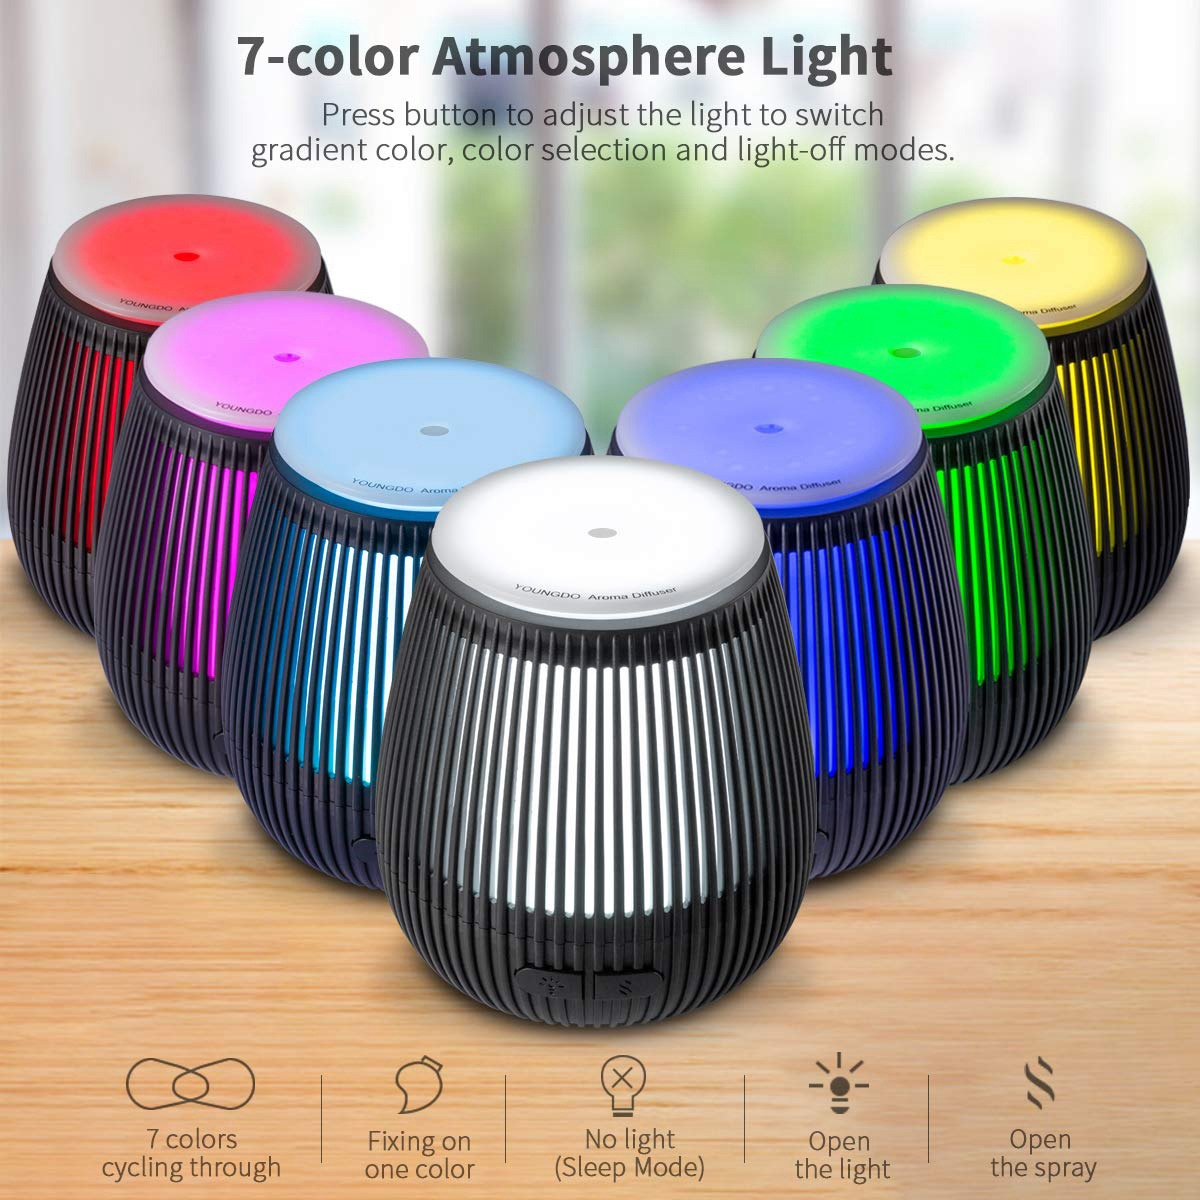 Essential Oil Diffuser, Ultrasonic Aroma Cool Mist Humidifier With Adjustable Mist Mode, Waterless Auto Shut-Off And 7 Color L